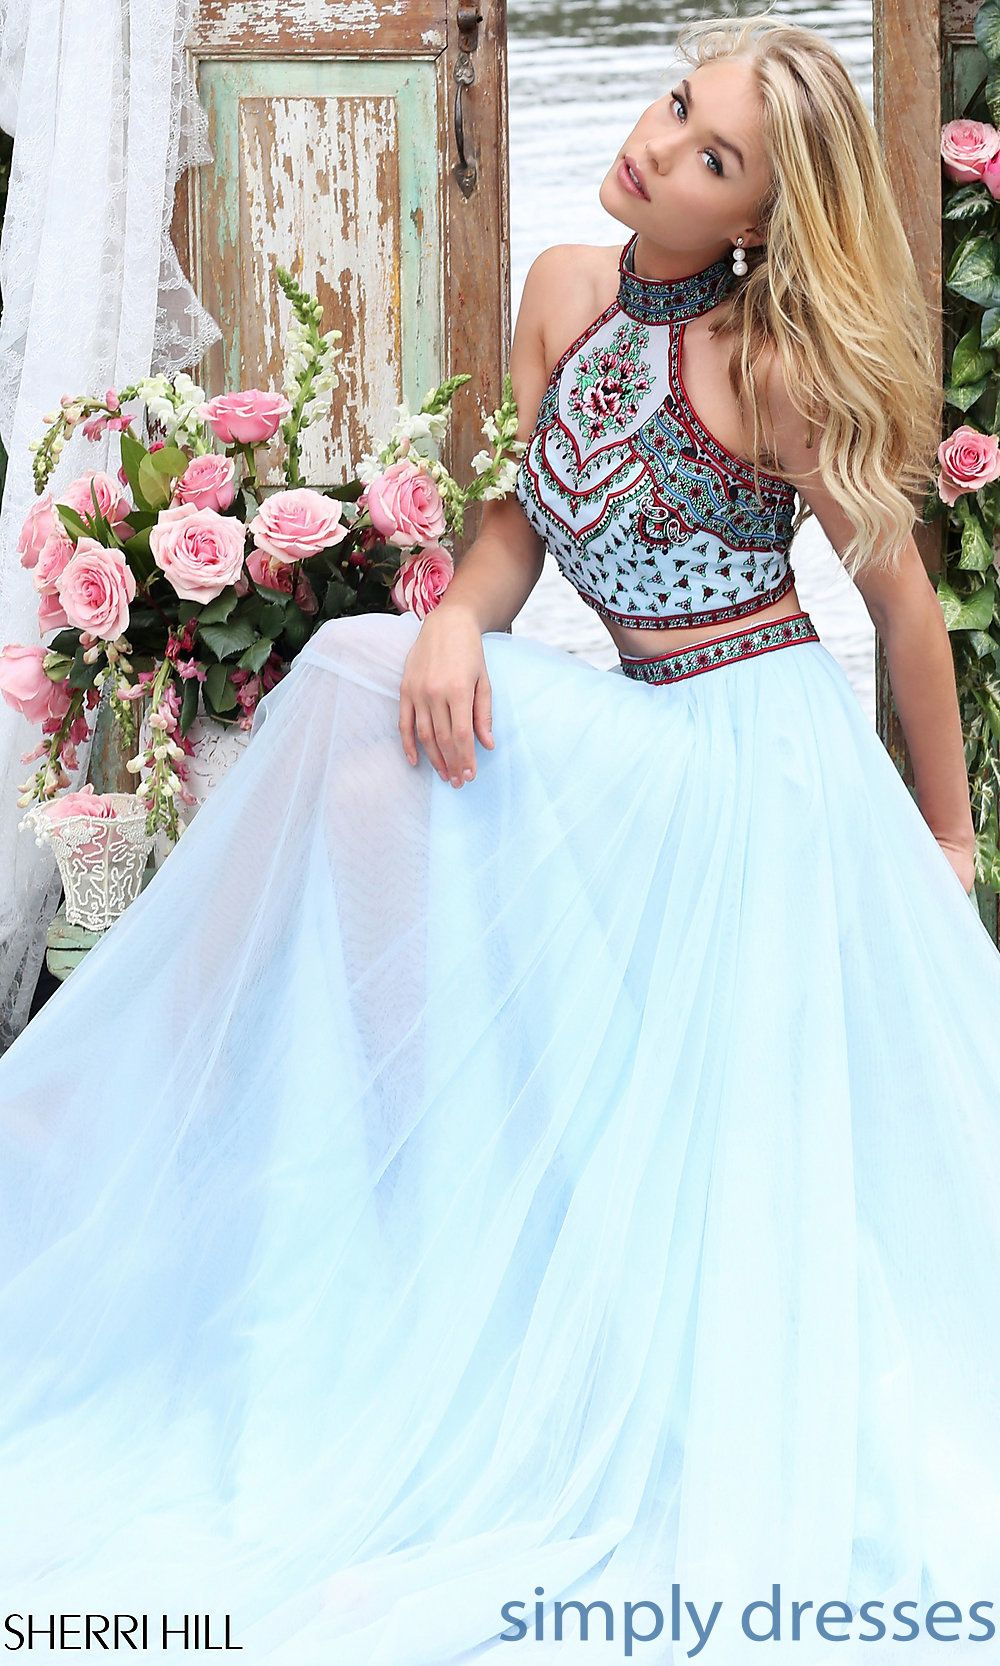 SH-50075 - Embroidered-Top Two-Piece Sherri Hill Formal Gown ...